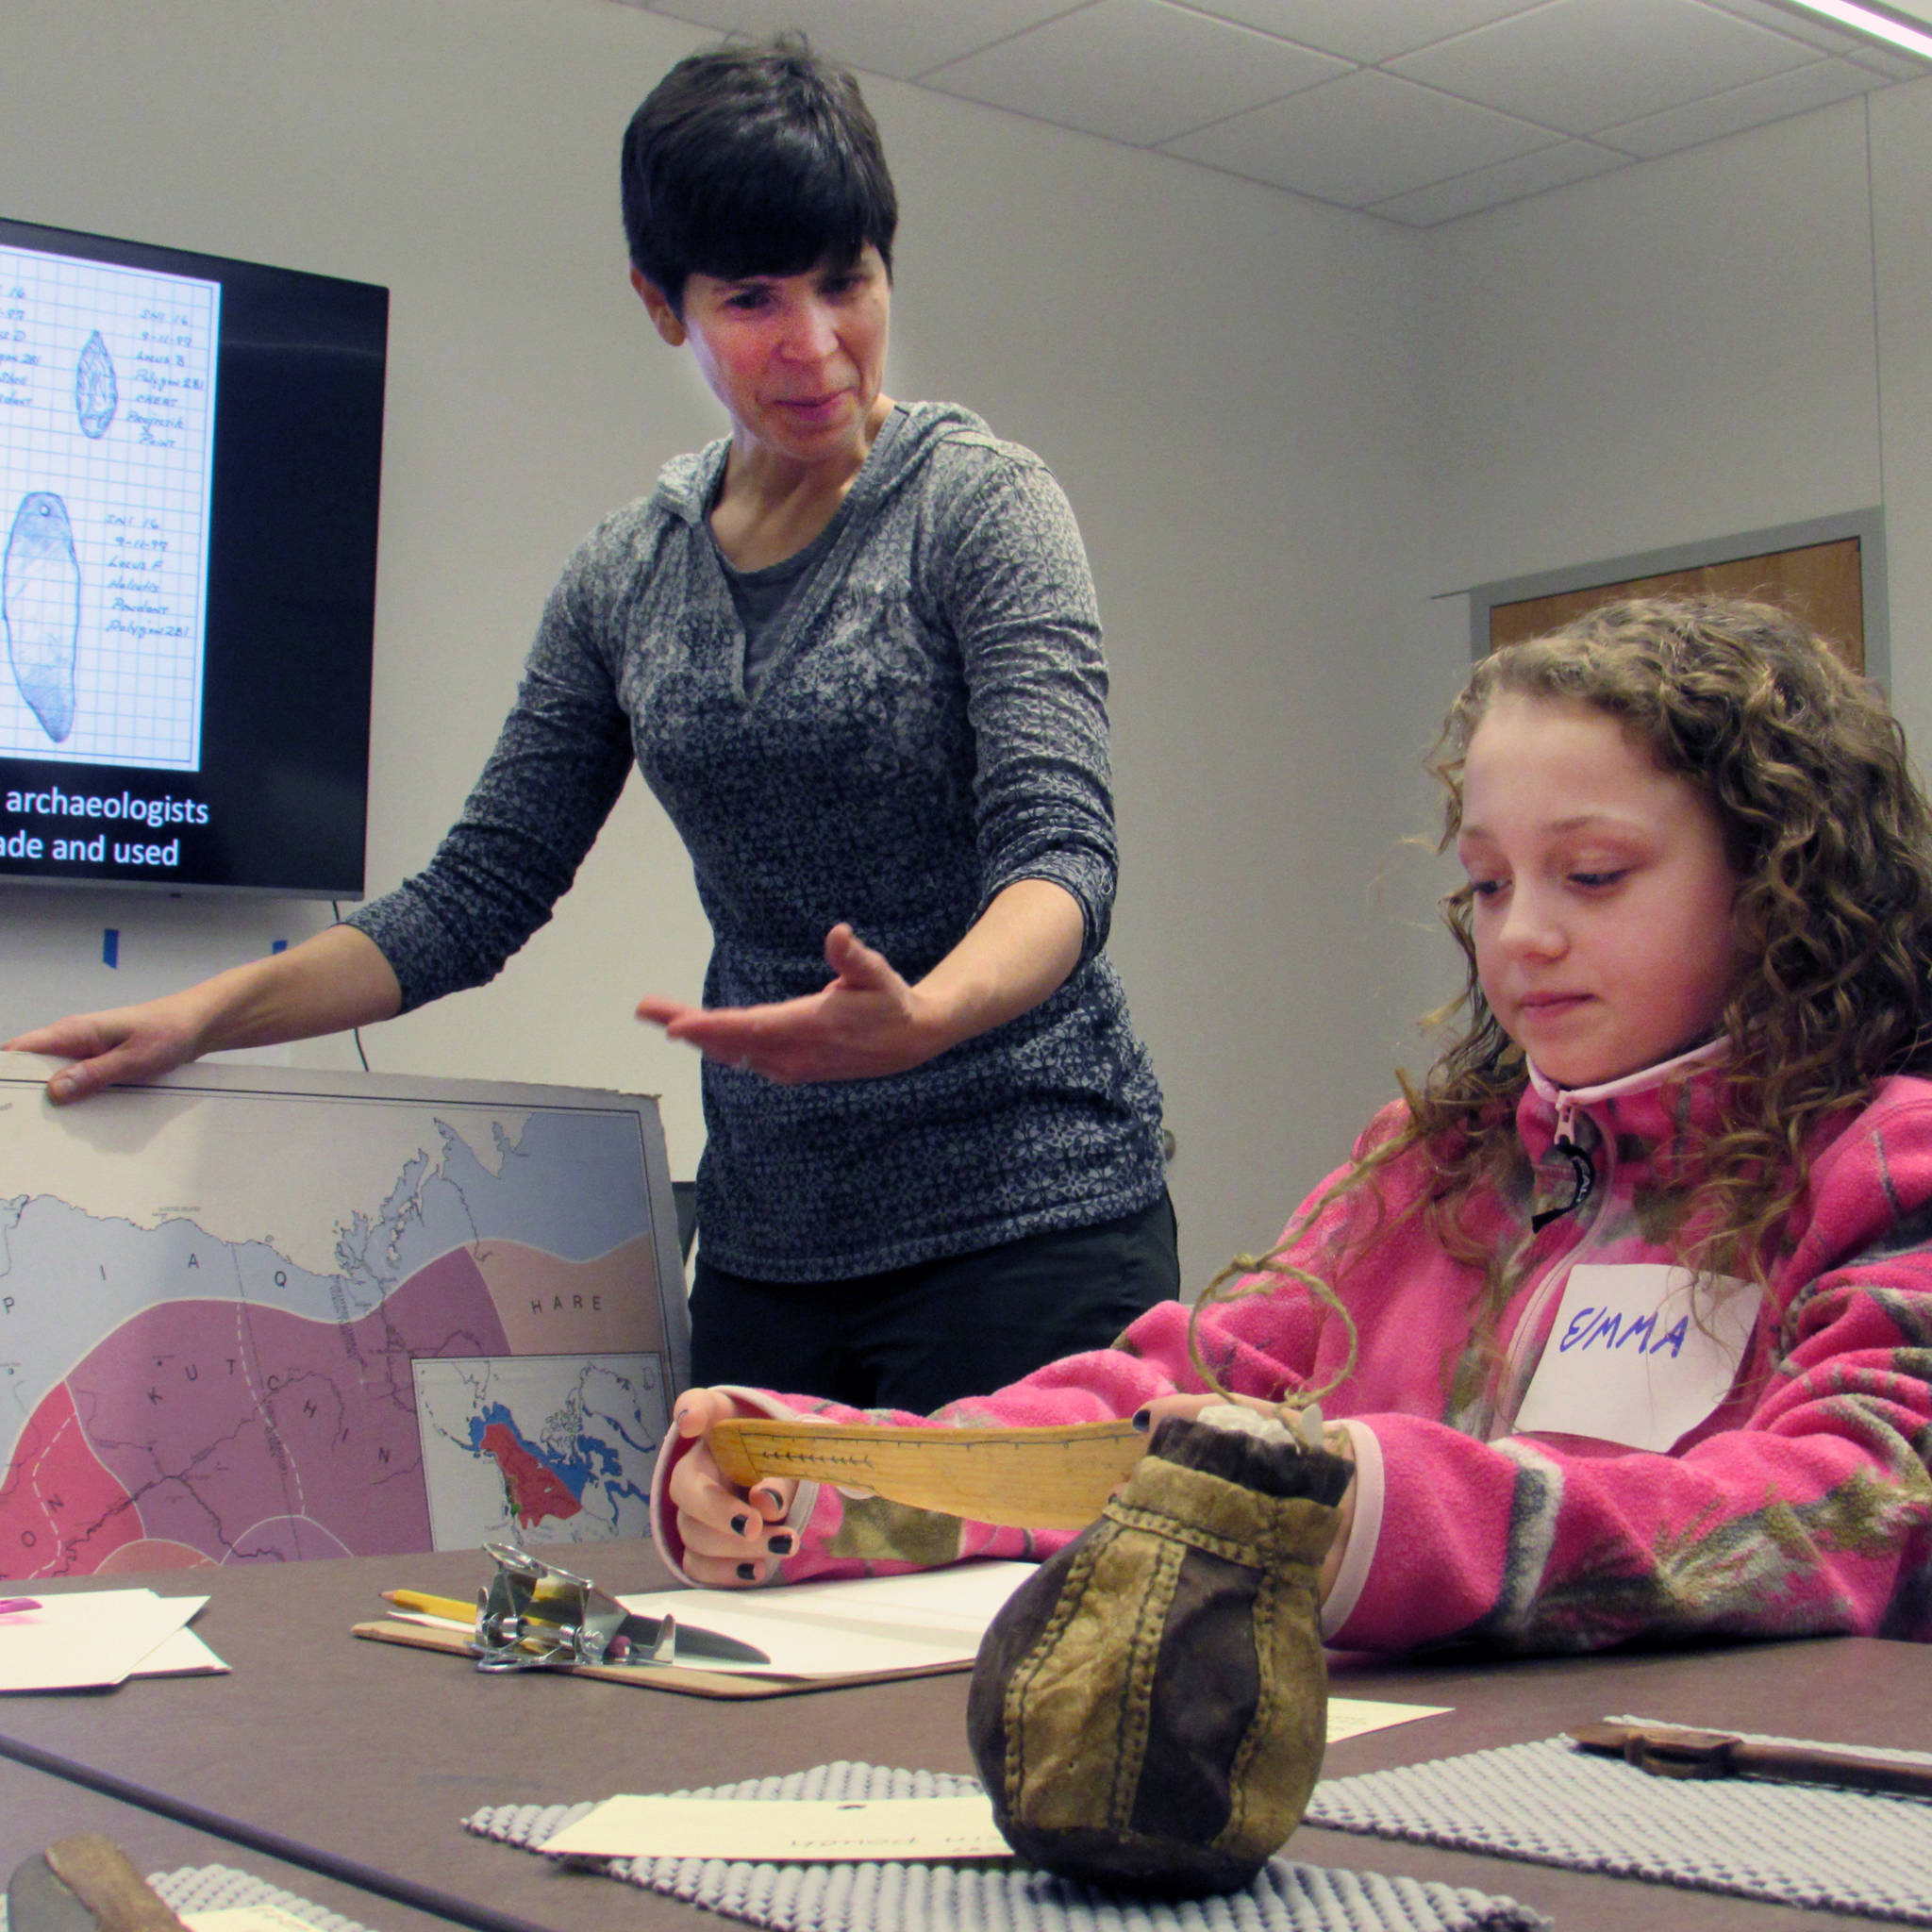 Science illustrator Kathy Hocker talks to Emma Dorsey, 10, who contemplates an artifact that she might sketch. (Ben Hohenstatt Capital City Weekly)